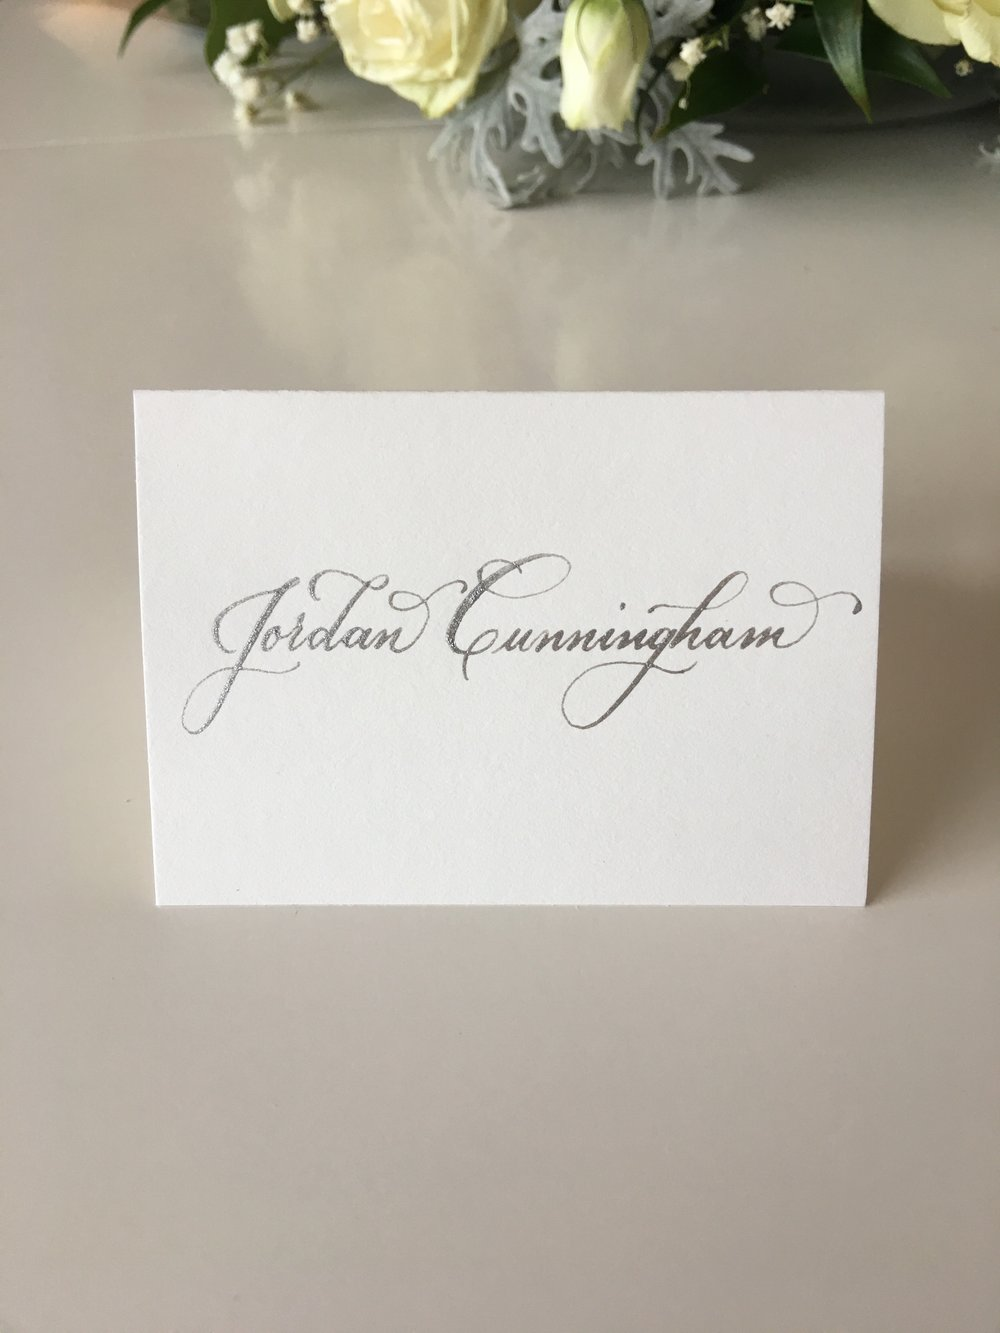 Full name on one line on place card.